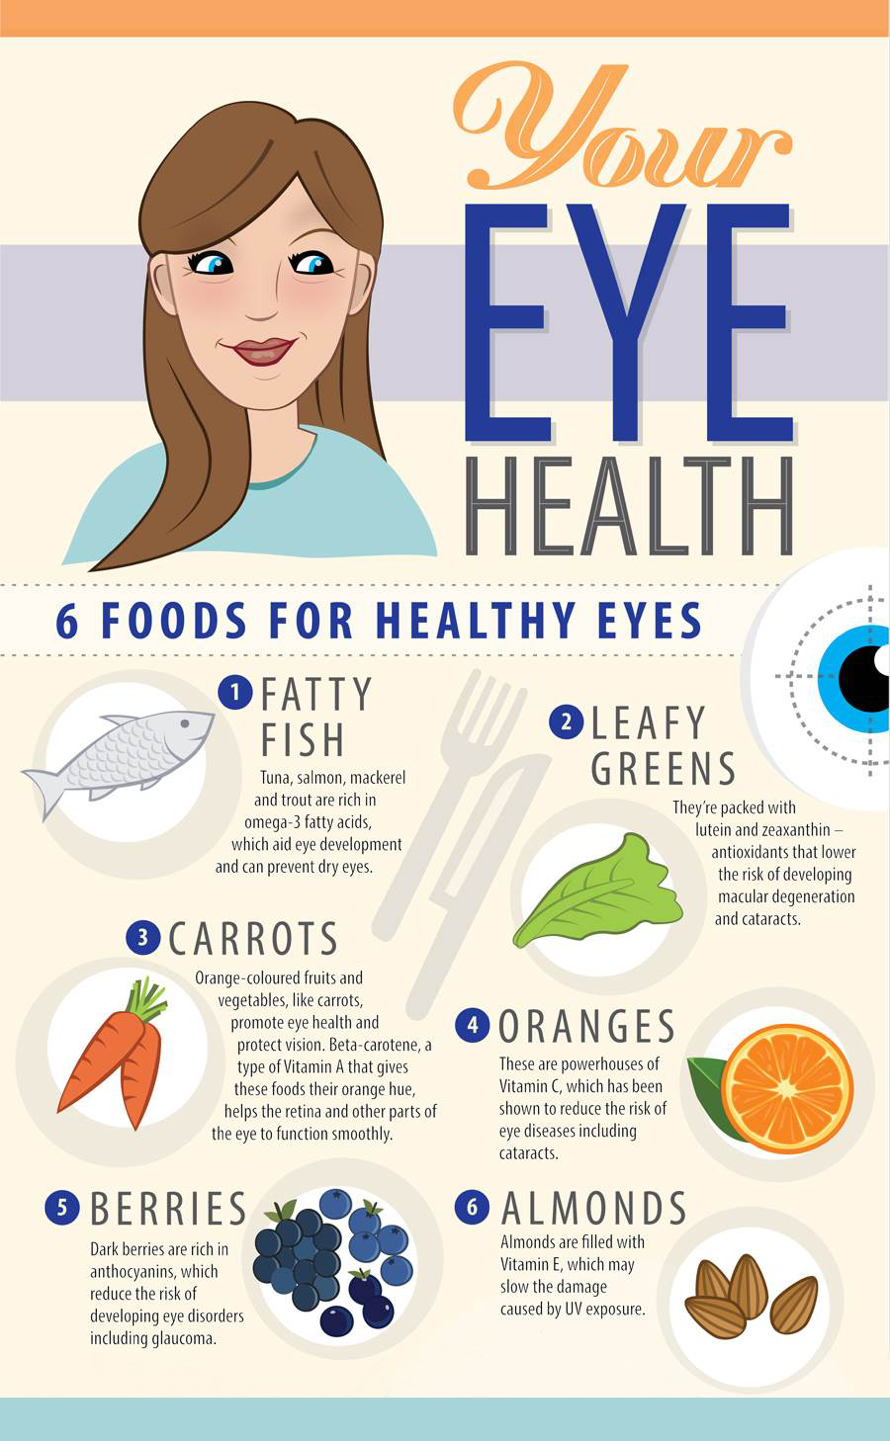 Infographic of 6 foods for healthy eyes.